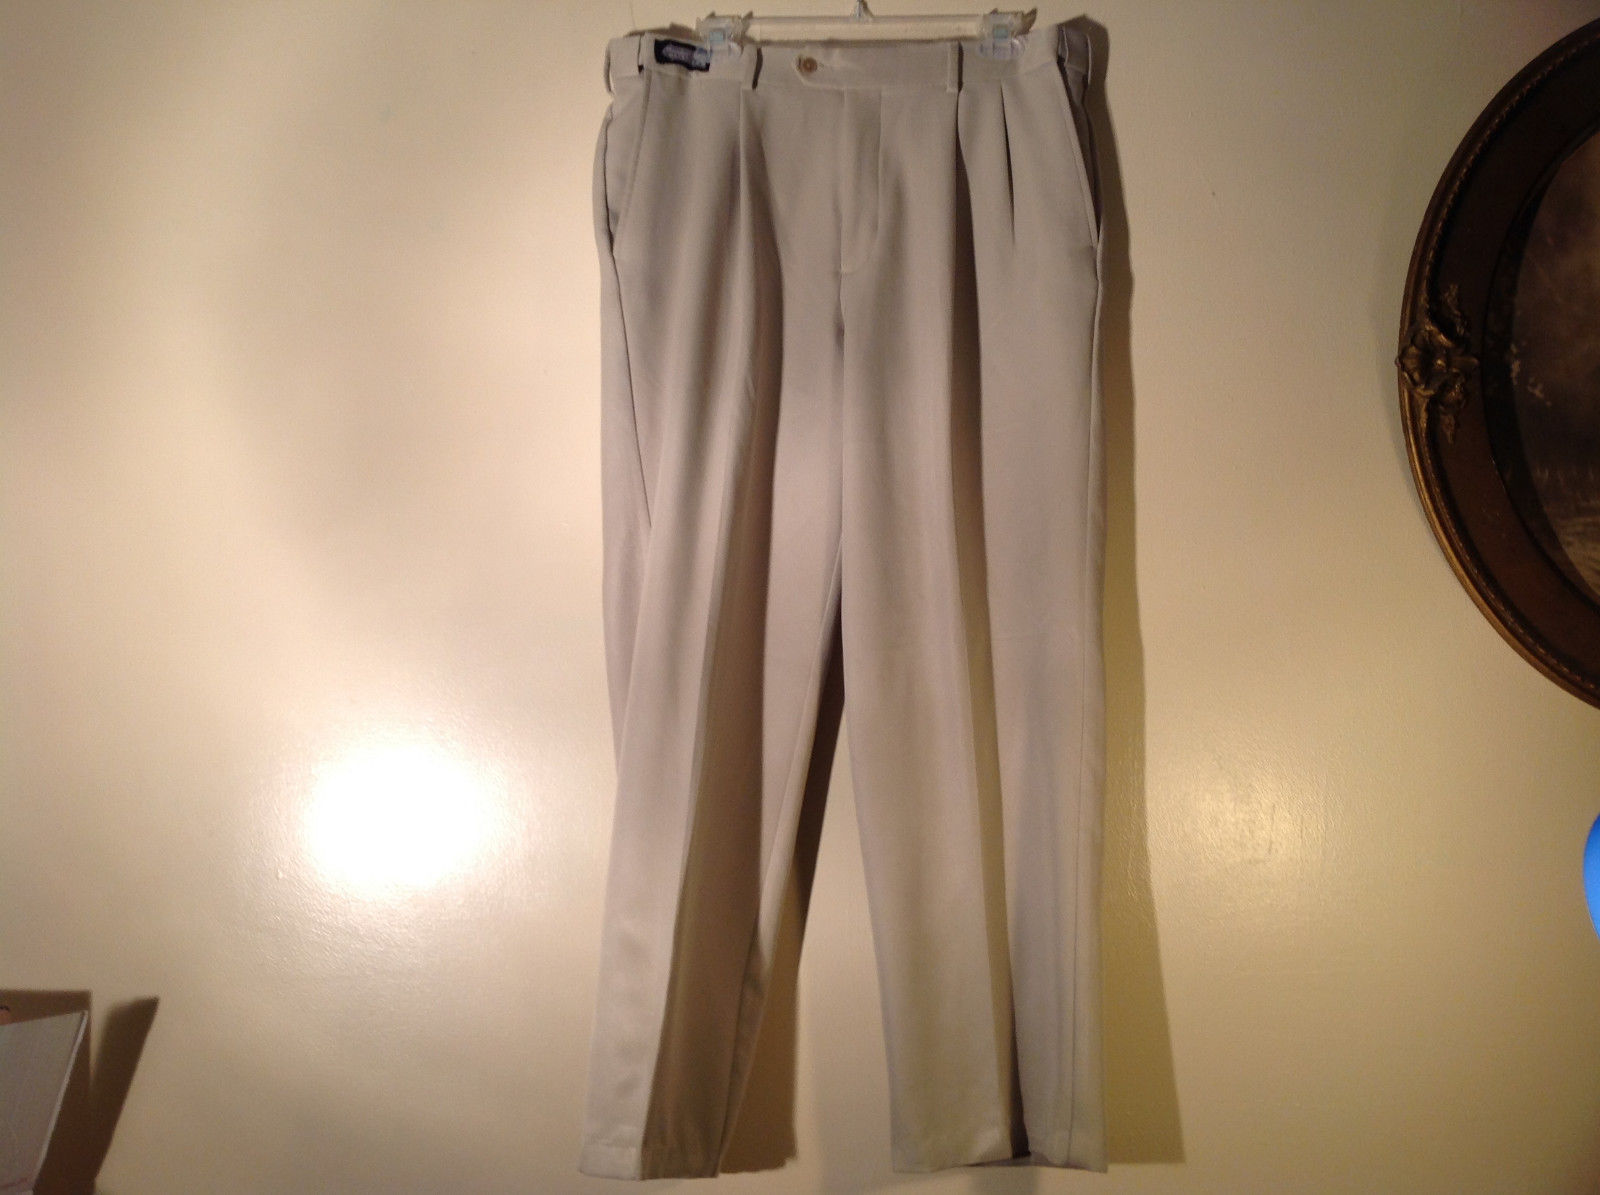 Savane Light Beige Dress Pants Comfort Plus Waistband Size 36W by 29L